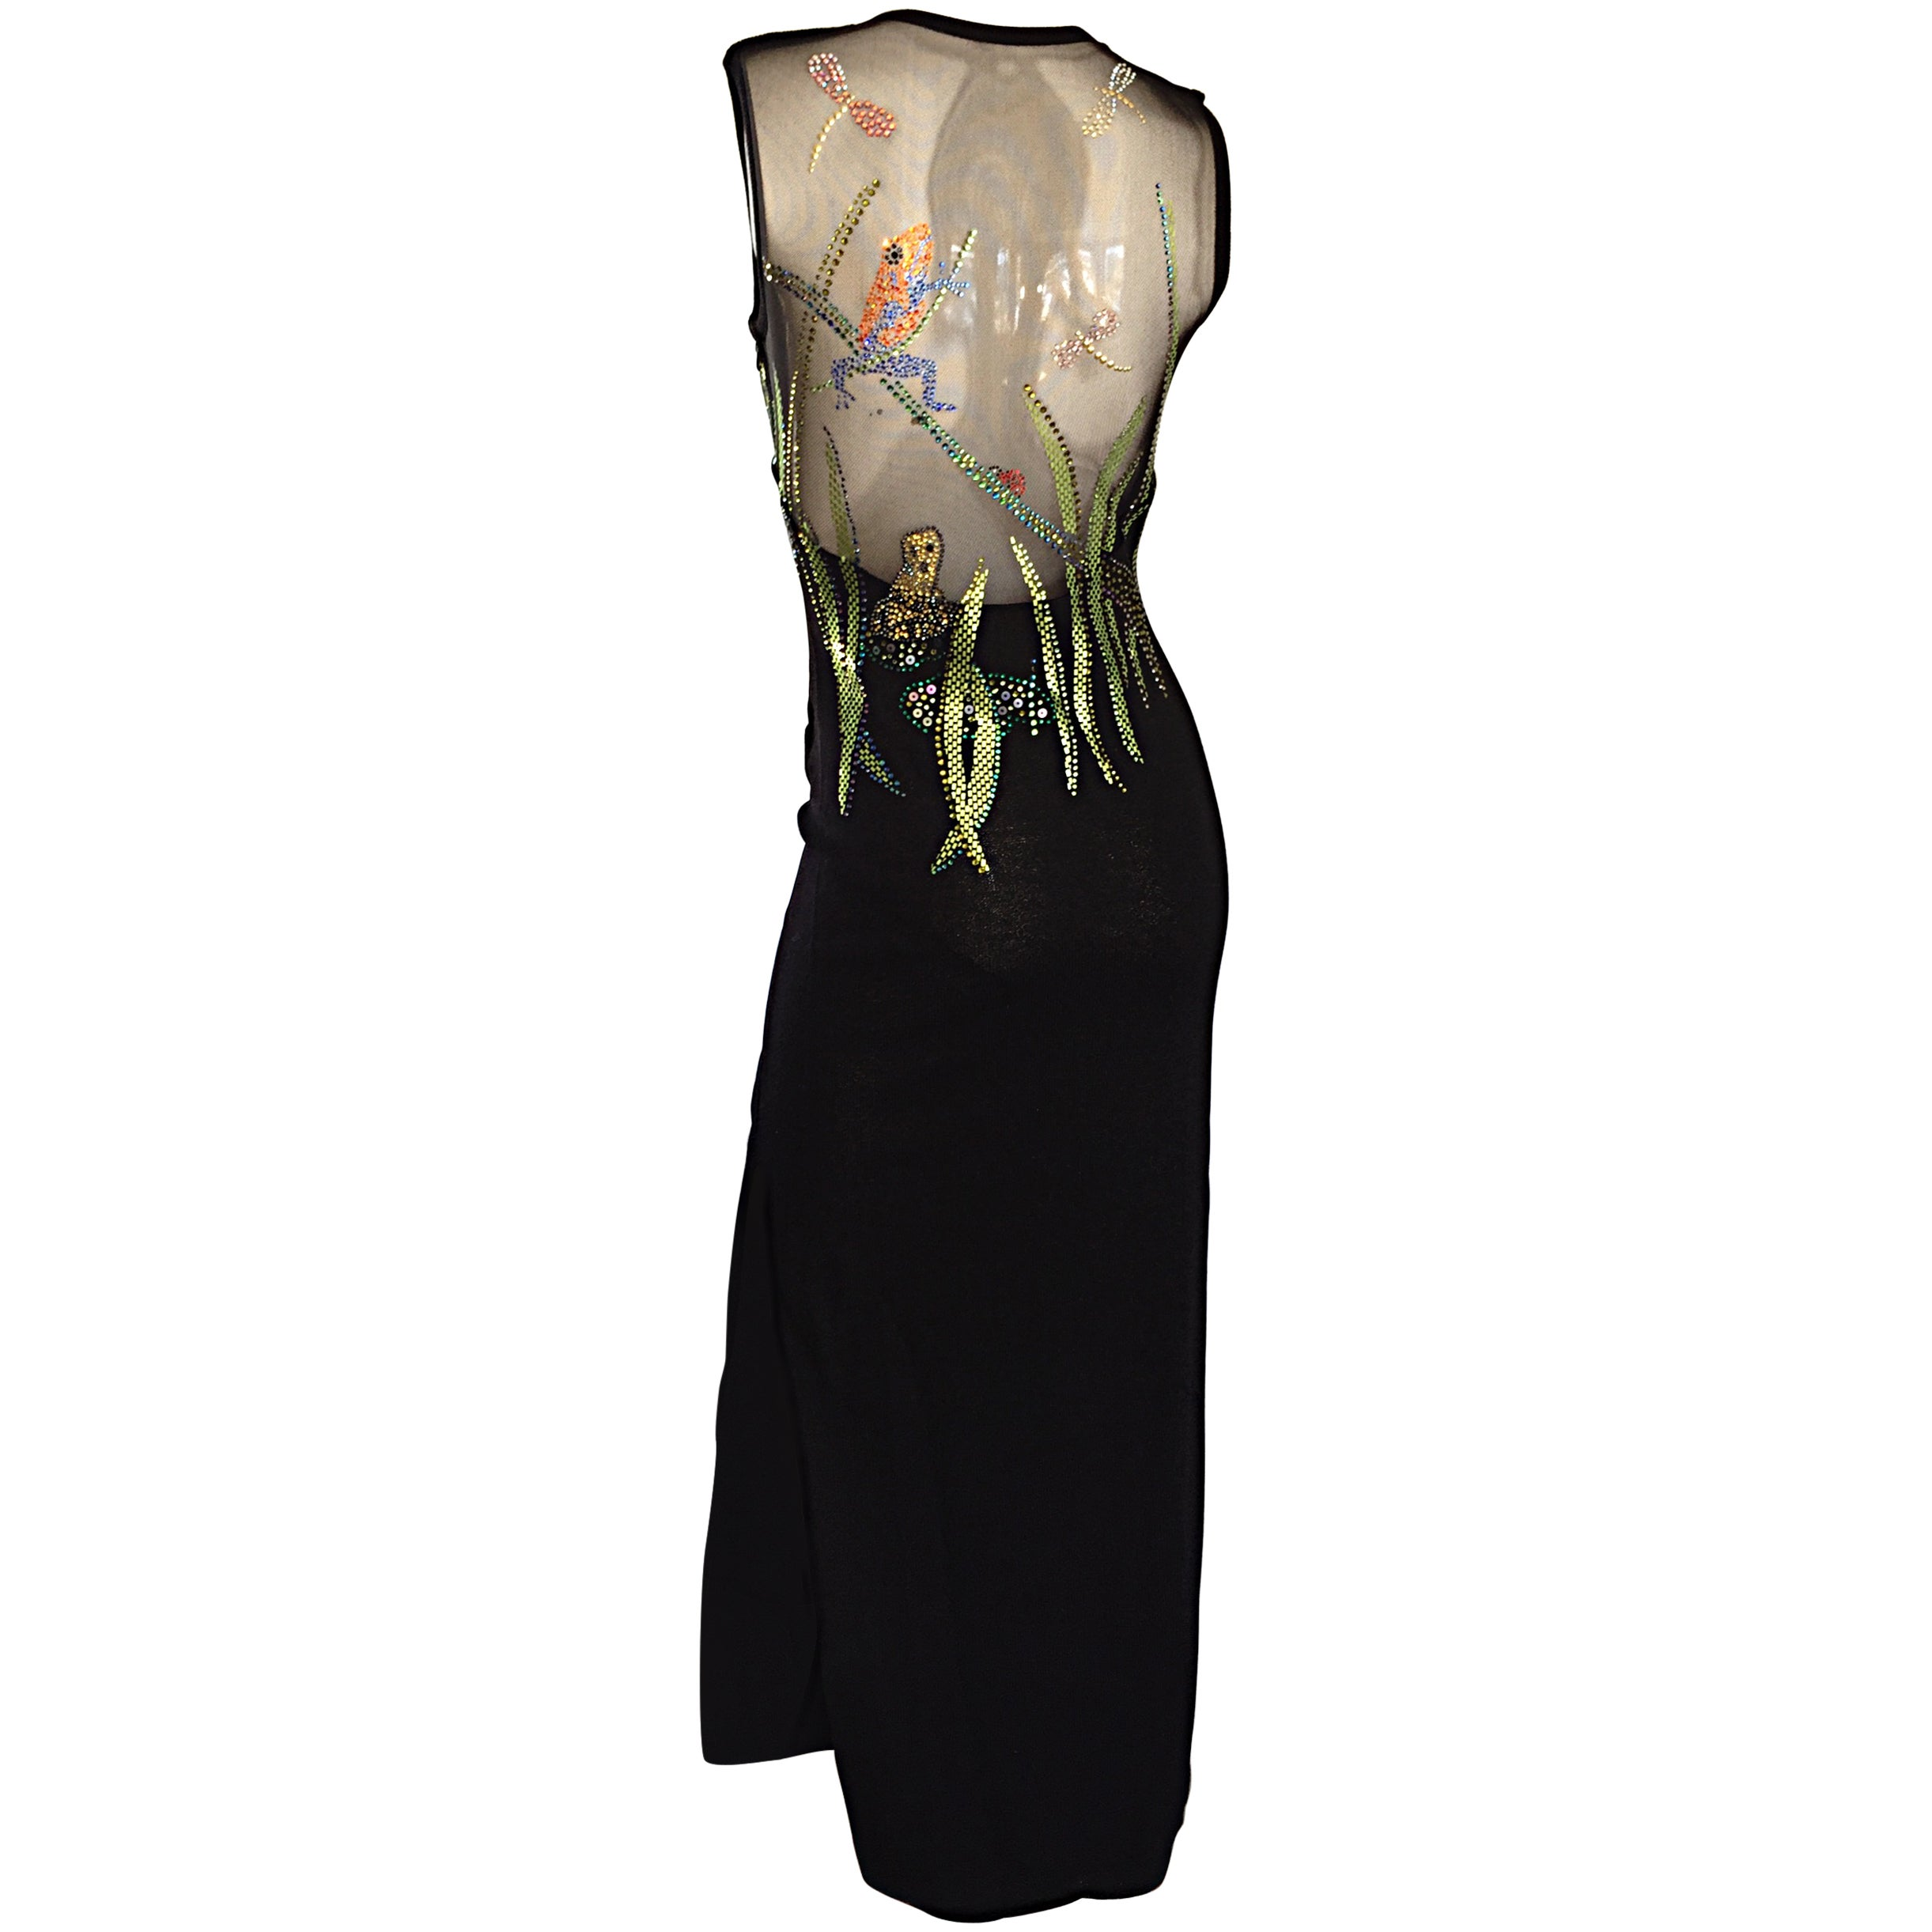 d197006c2565 St John Couture Marie Gray ' Dragonflies and Frogs